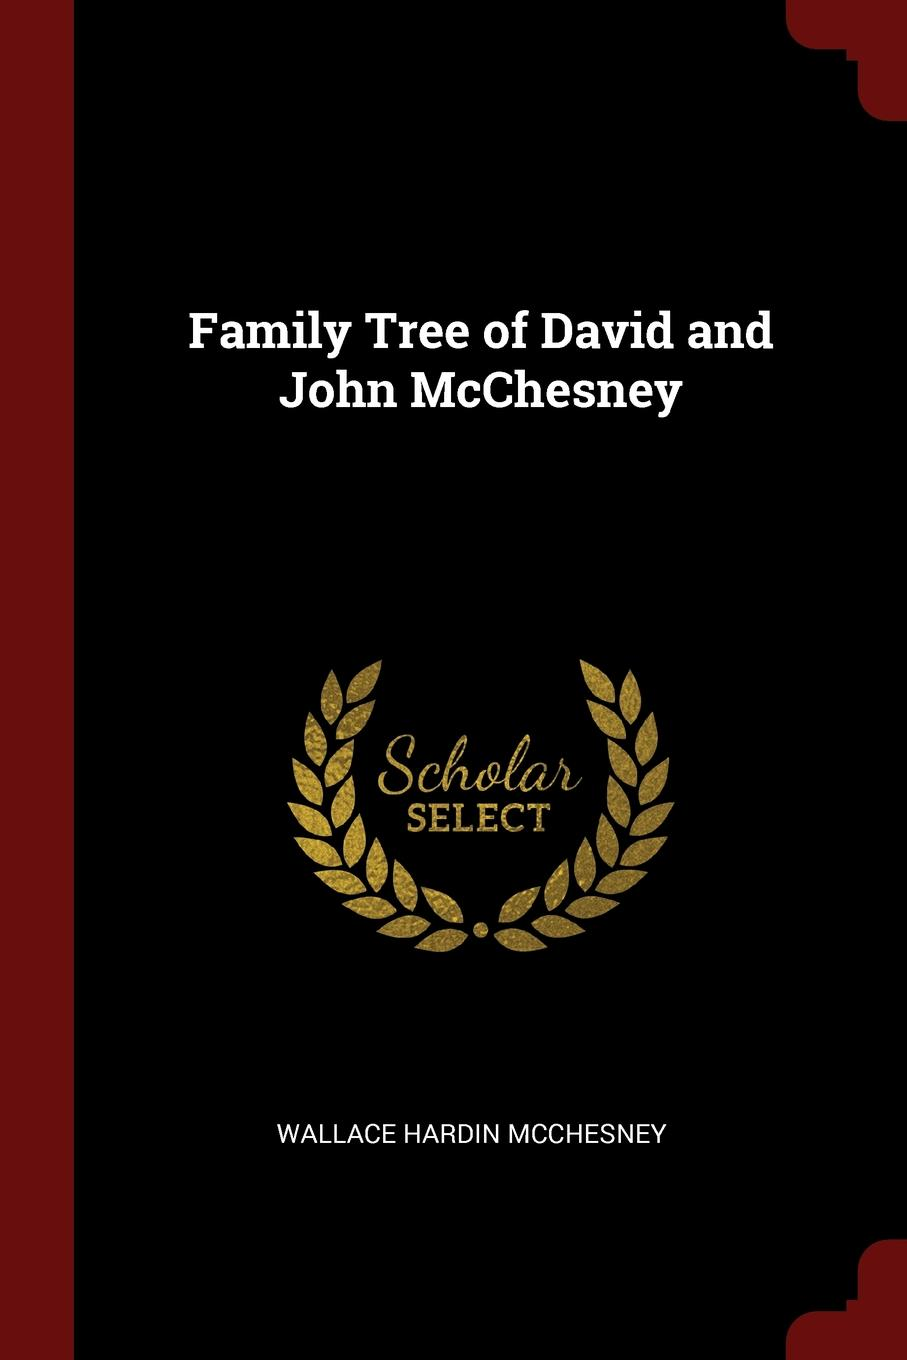 Wallace Hardin McChesney Family Tree of David and John McChesney